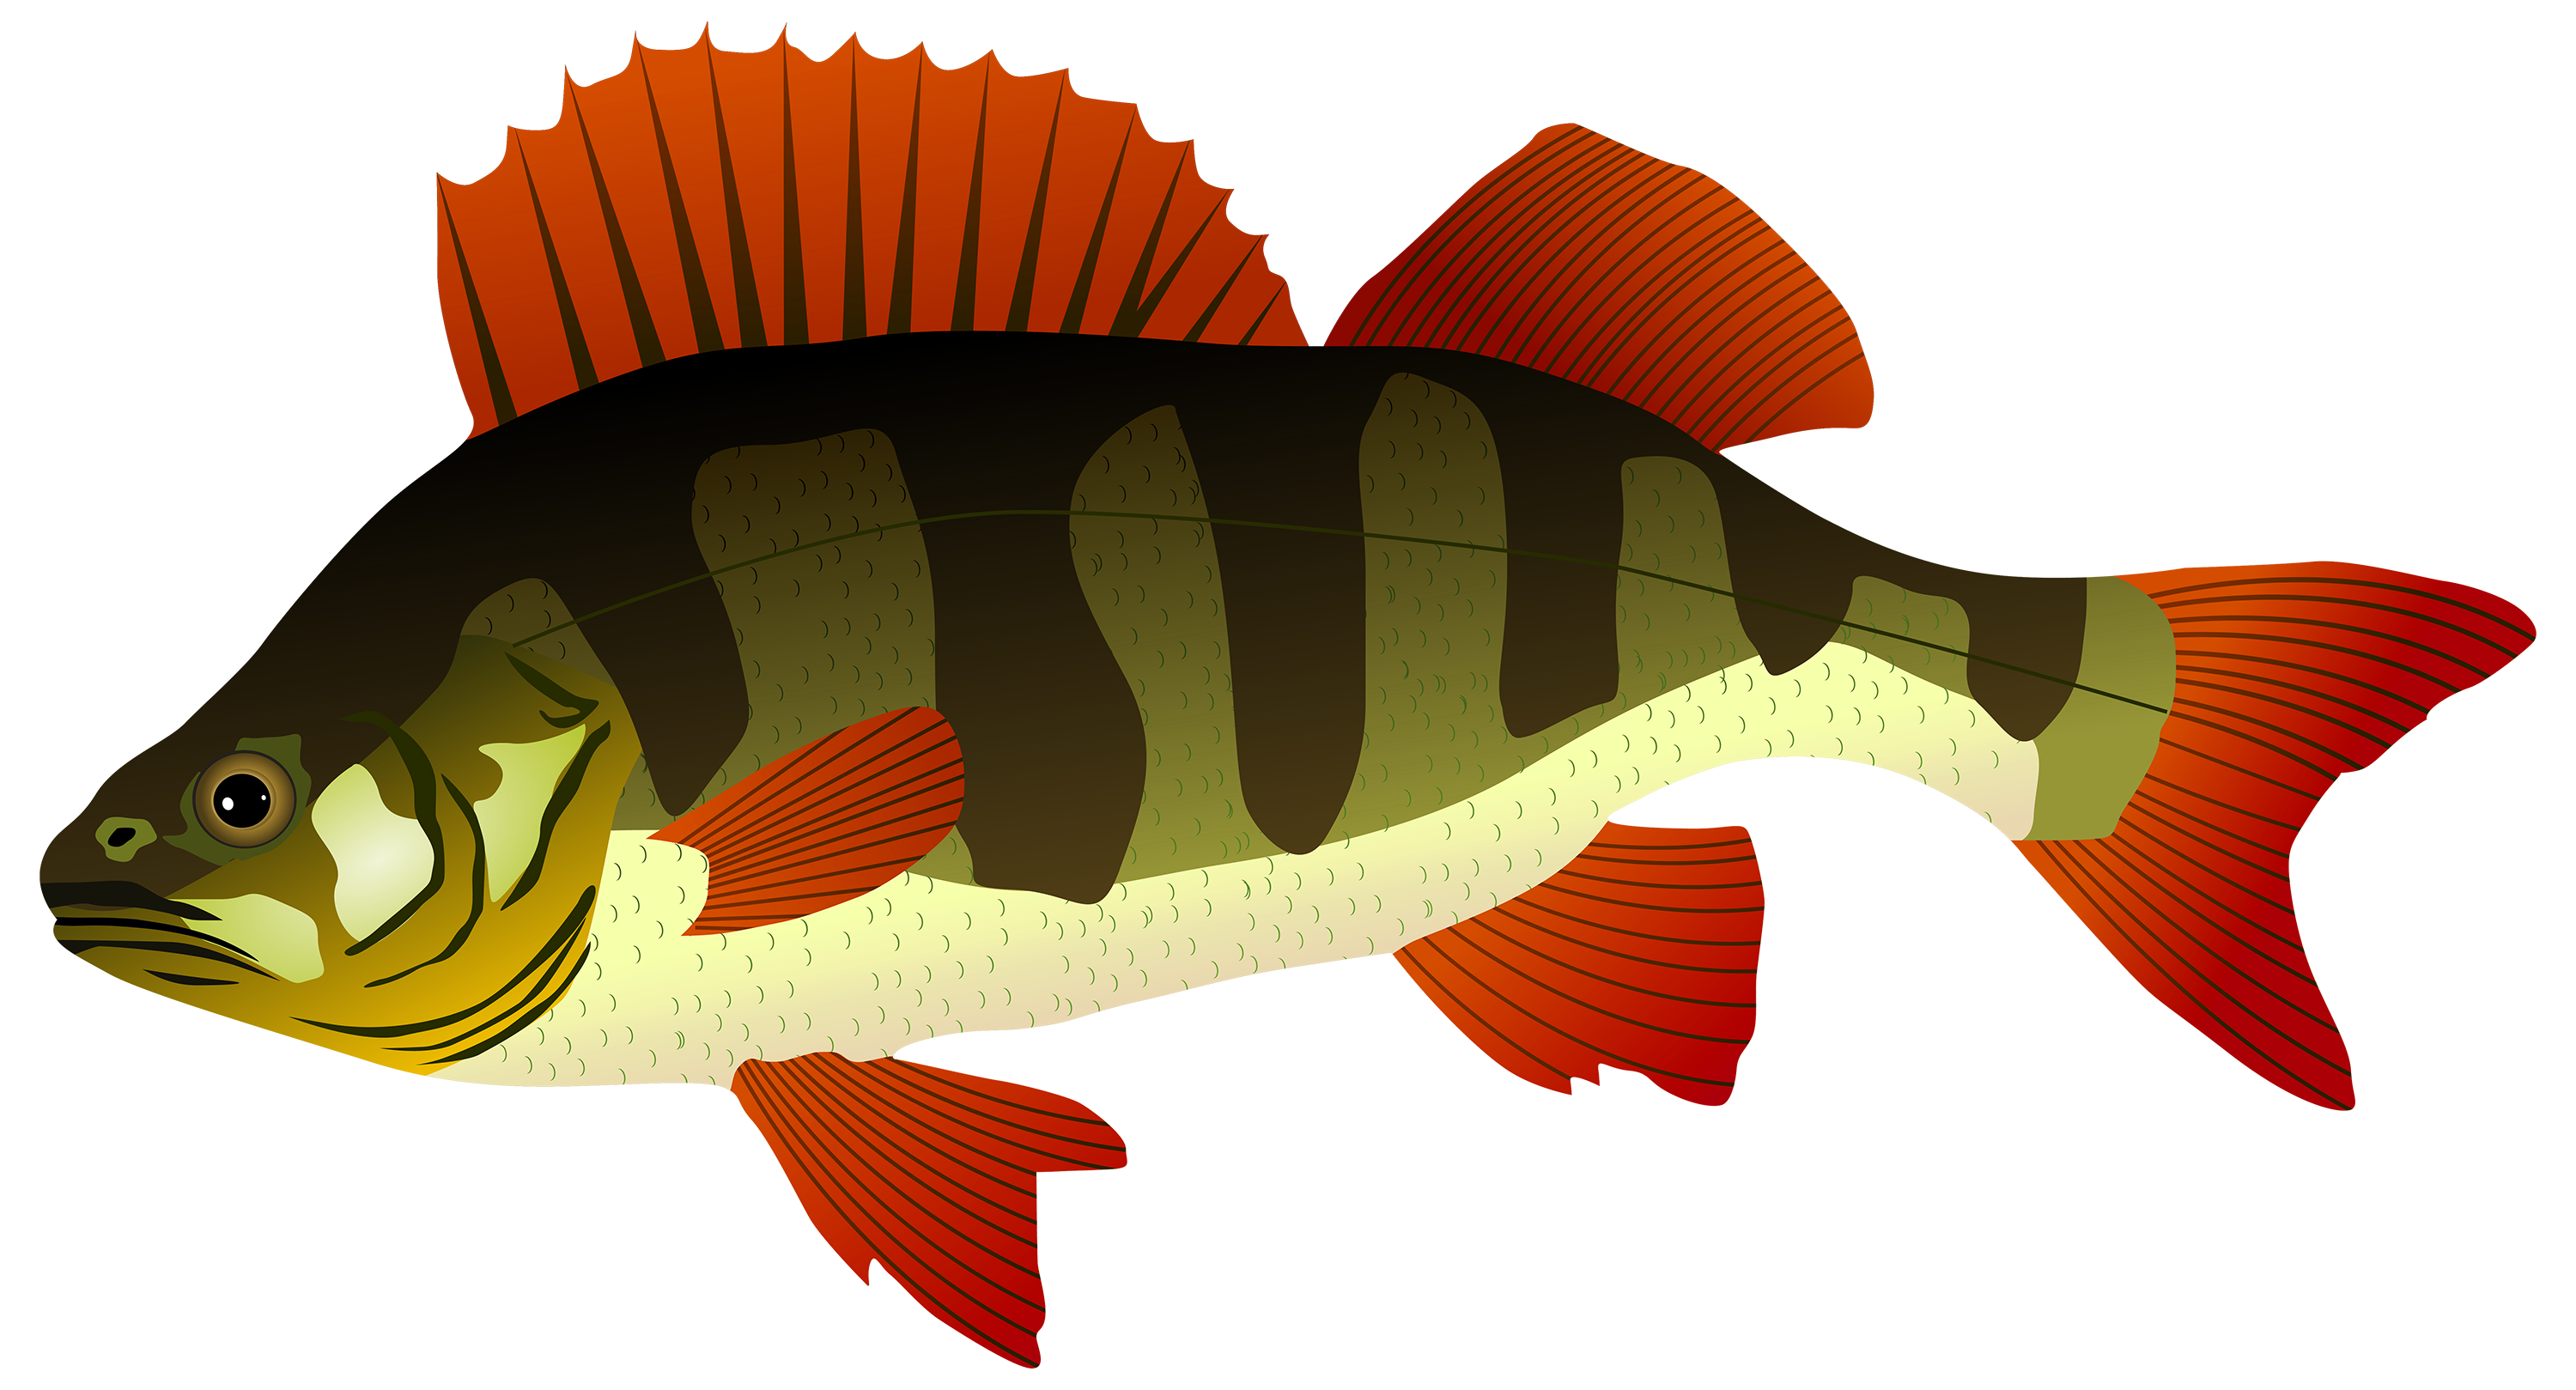 Realistic cool fish clipart images clipart free stock Bass Fish Clipart at GetDrawings.com | Free for personal use Bass ... clipart free stock